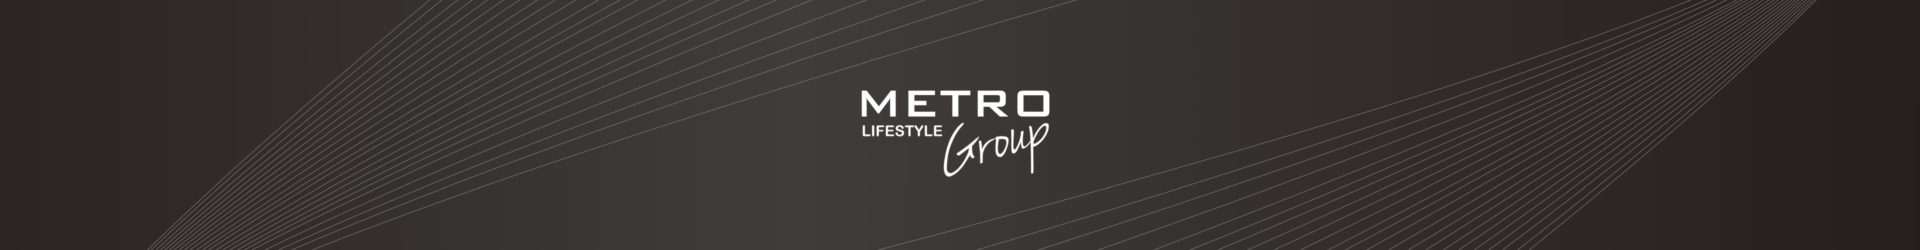 【Metro Lifestyle Group x Star Property x Galaxy Asset Management – 3 Days Team Building in Bangkok】